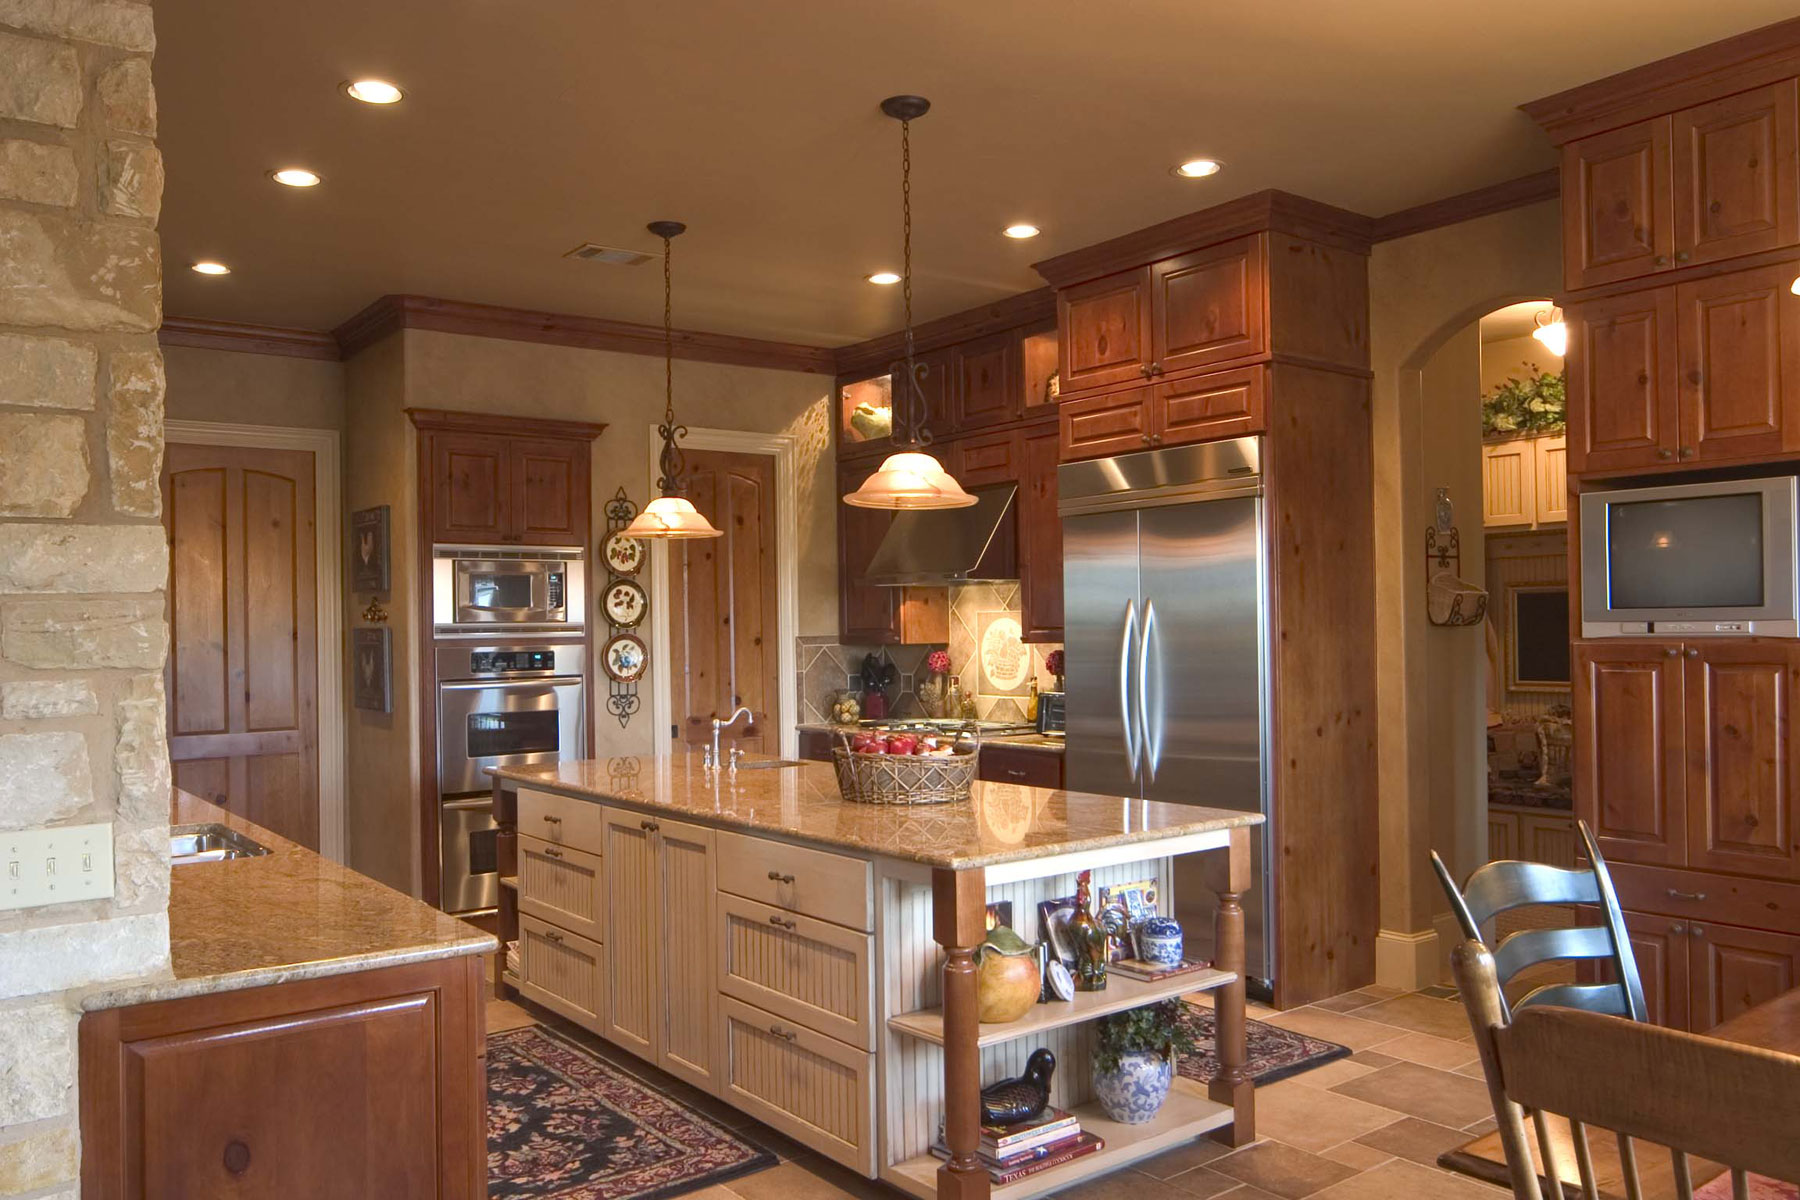 """Kitchen cabinet 6 with C101 - OE4, IE1, RP1 in Alder, Knotty and C101 - OE4, IE5, FP3/8"""" VG in Soft Maple, Paint Grade with MDF Panel cabinet doors"""